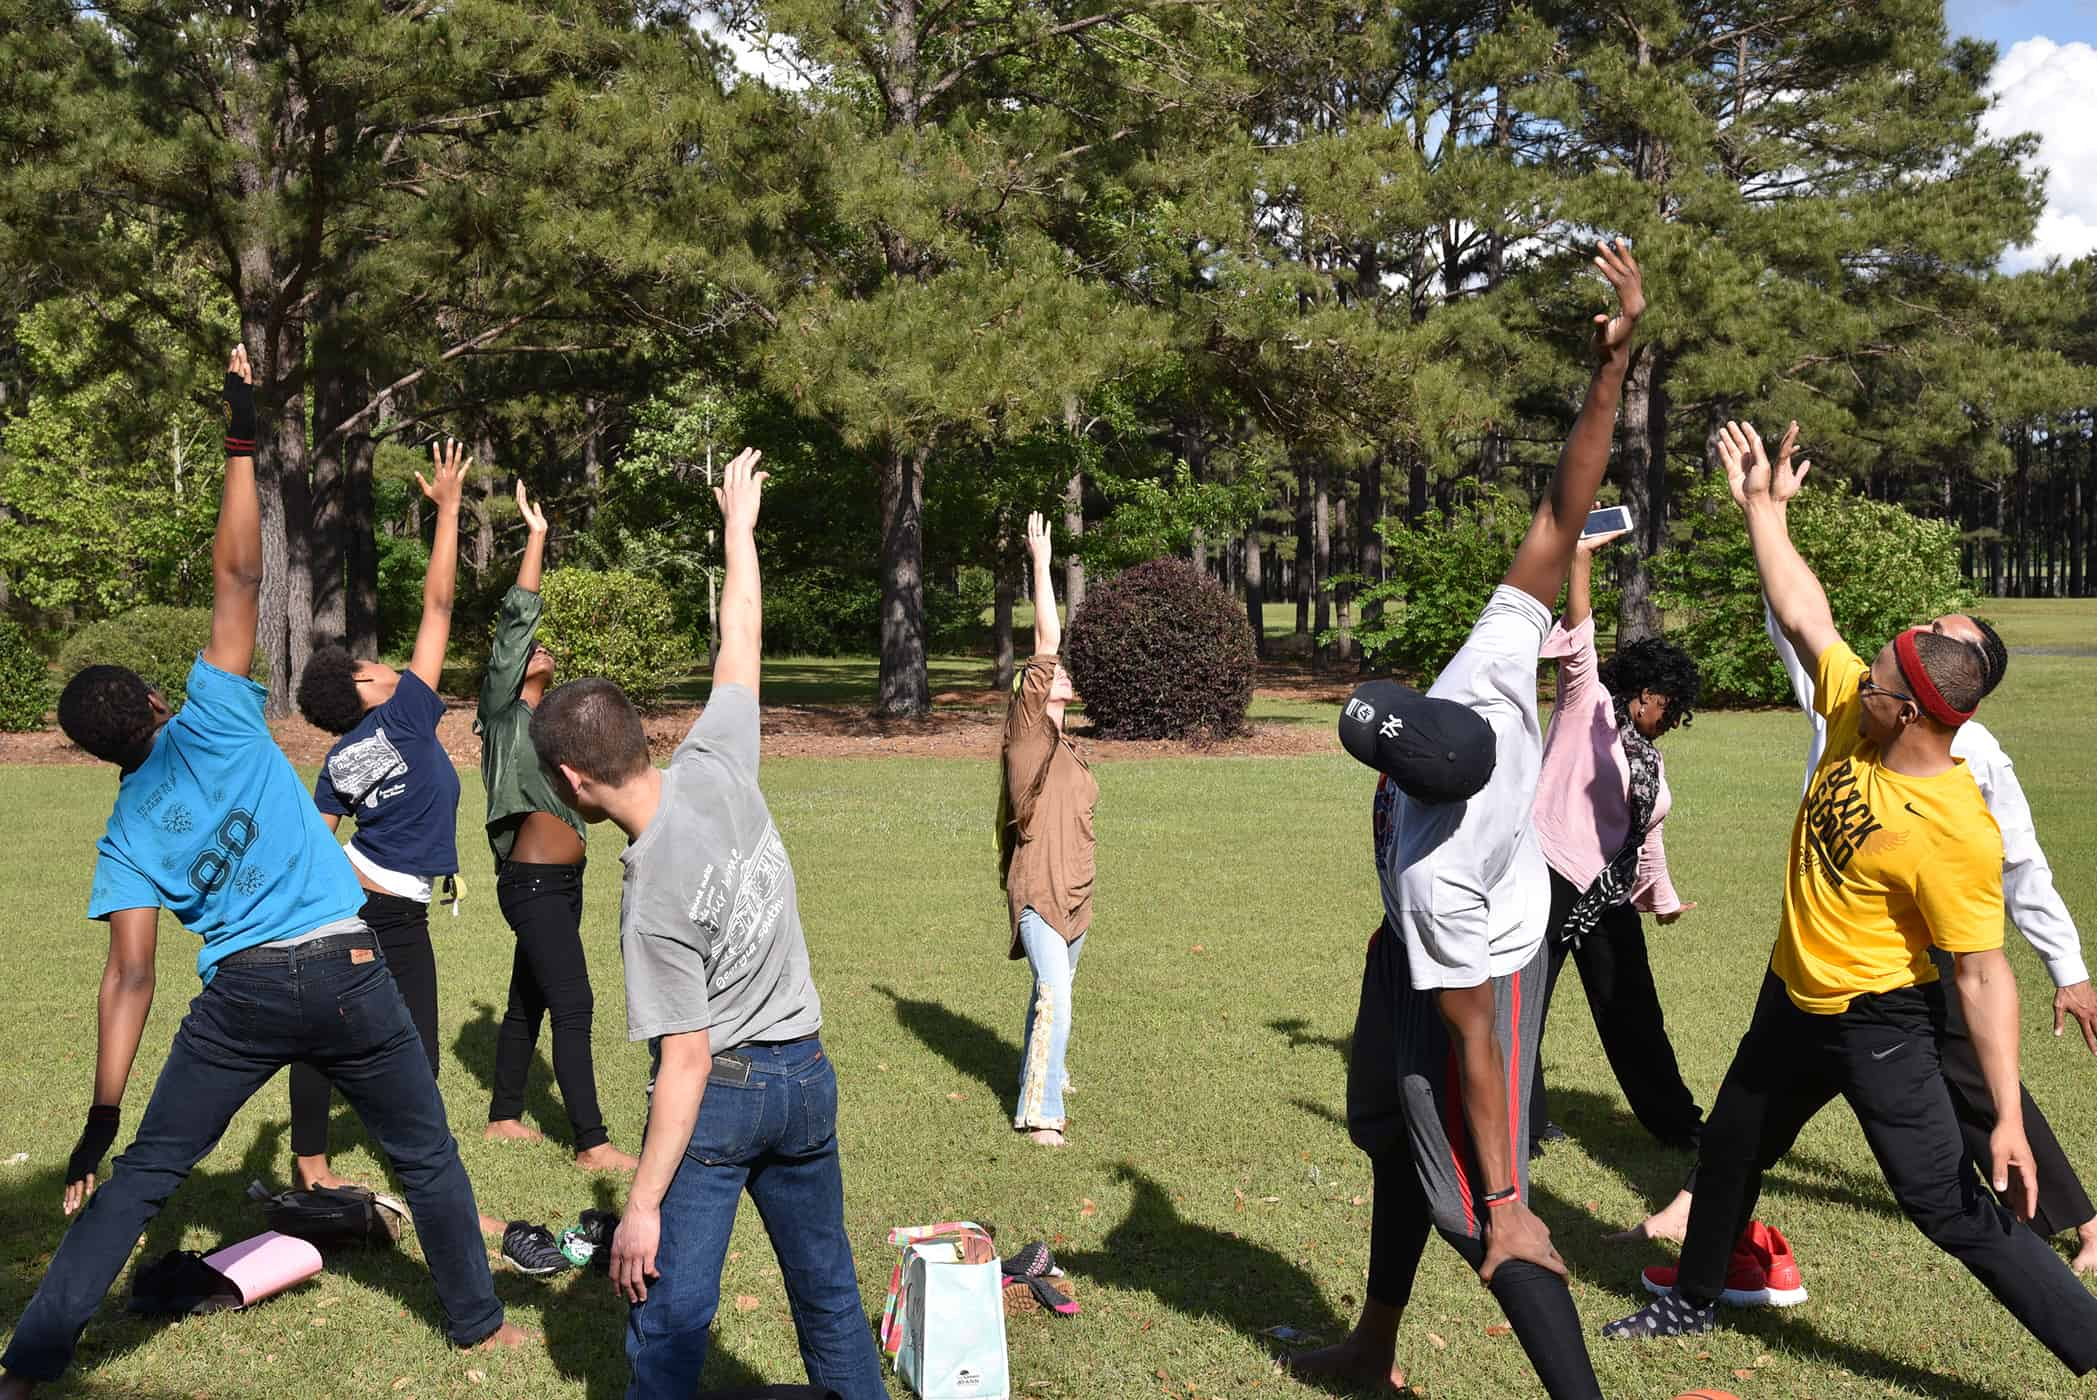 Students stand in a circle doing a yoga pose.